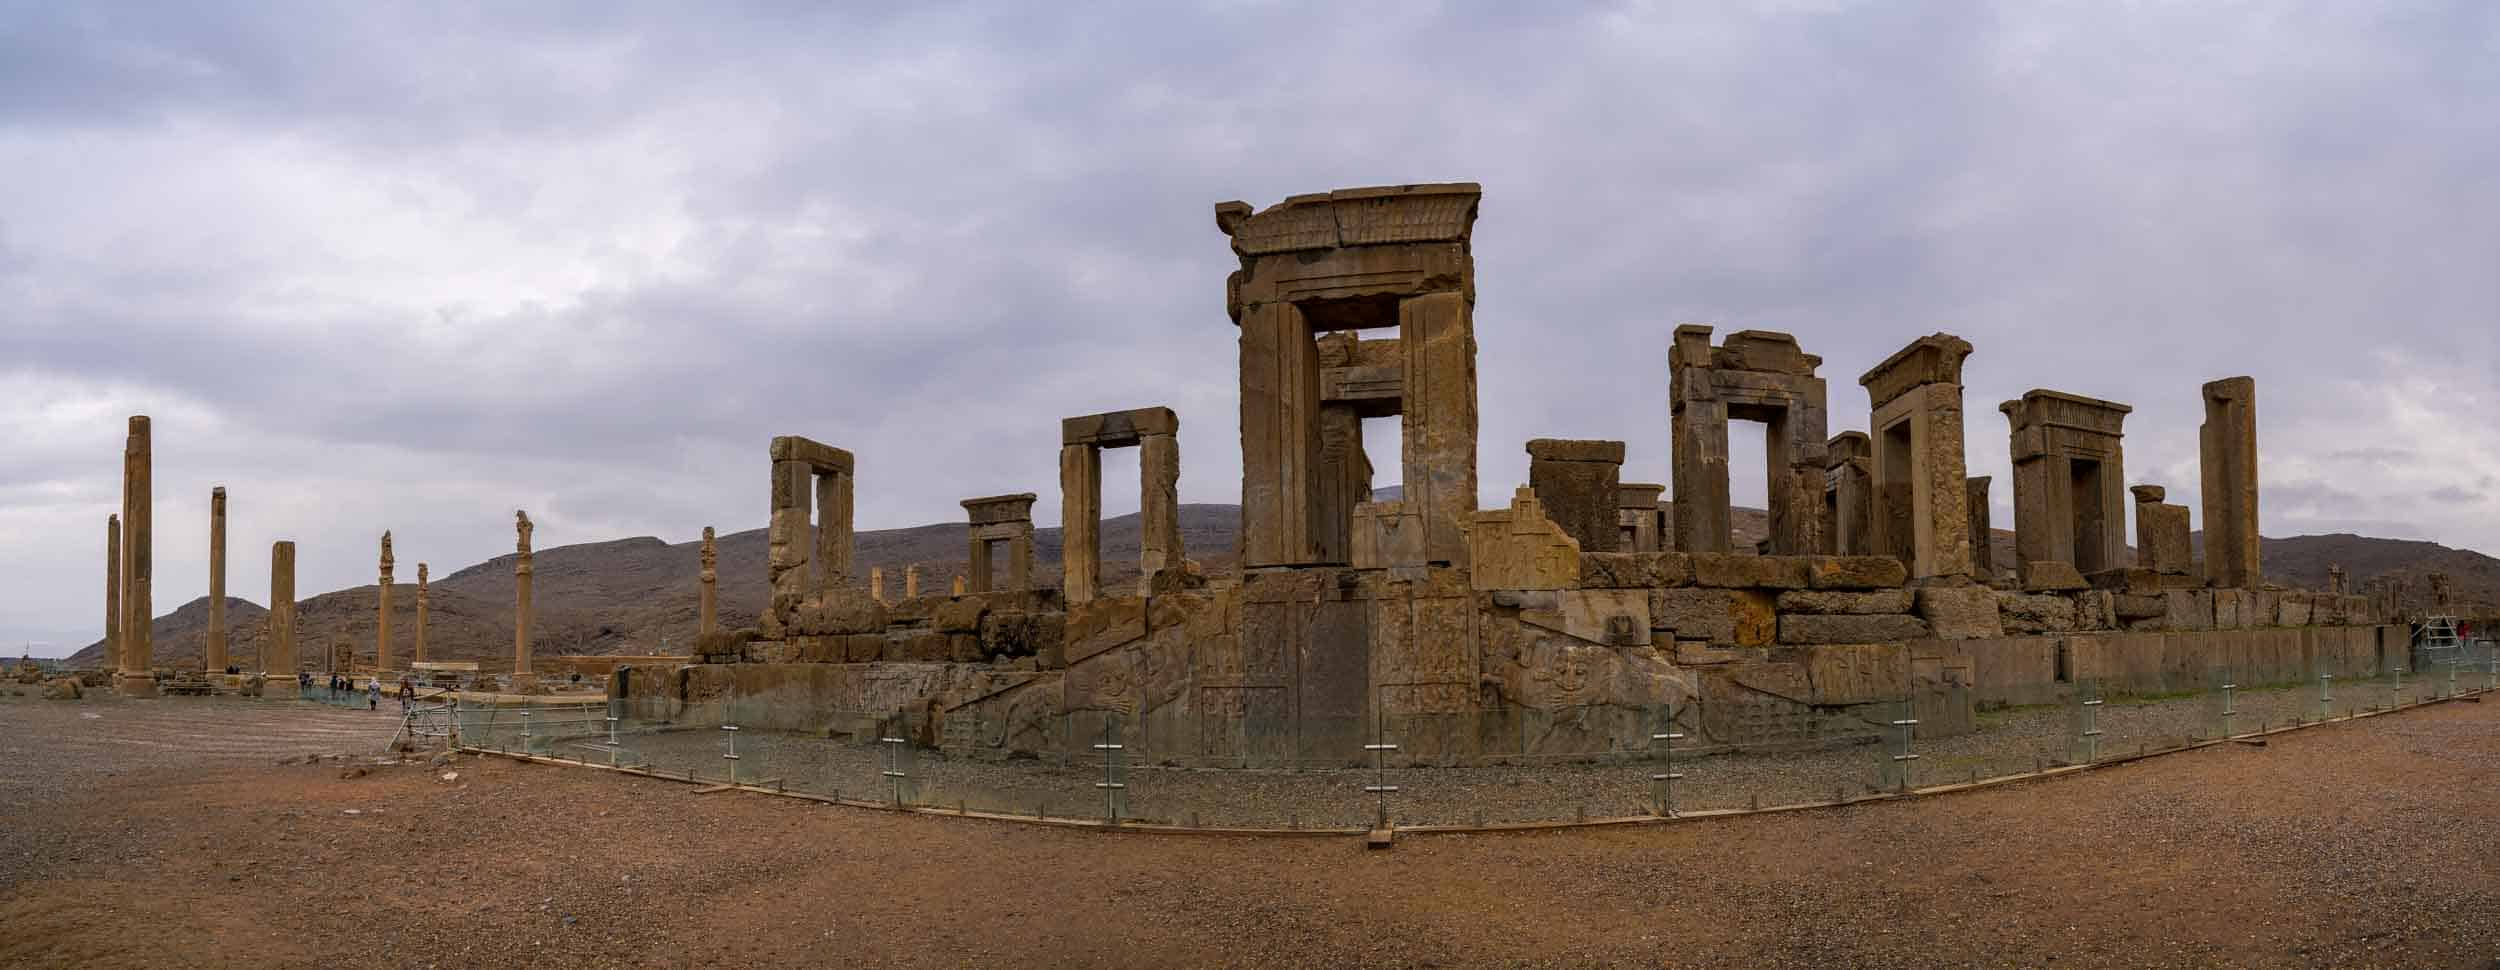 The main temple inside Persepolis in Iran